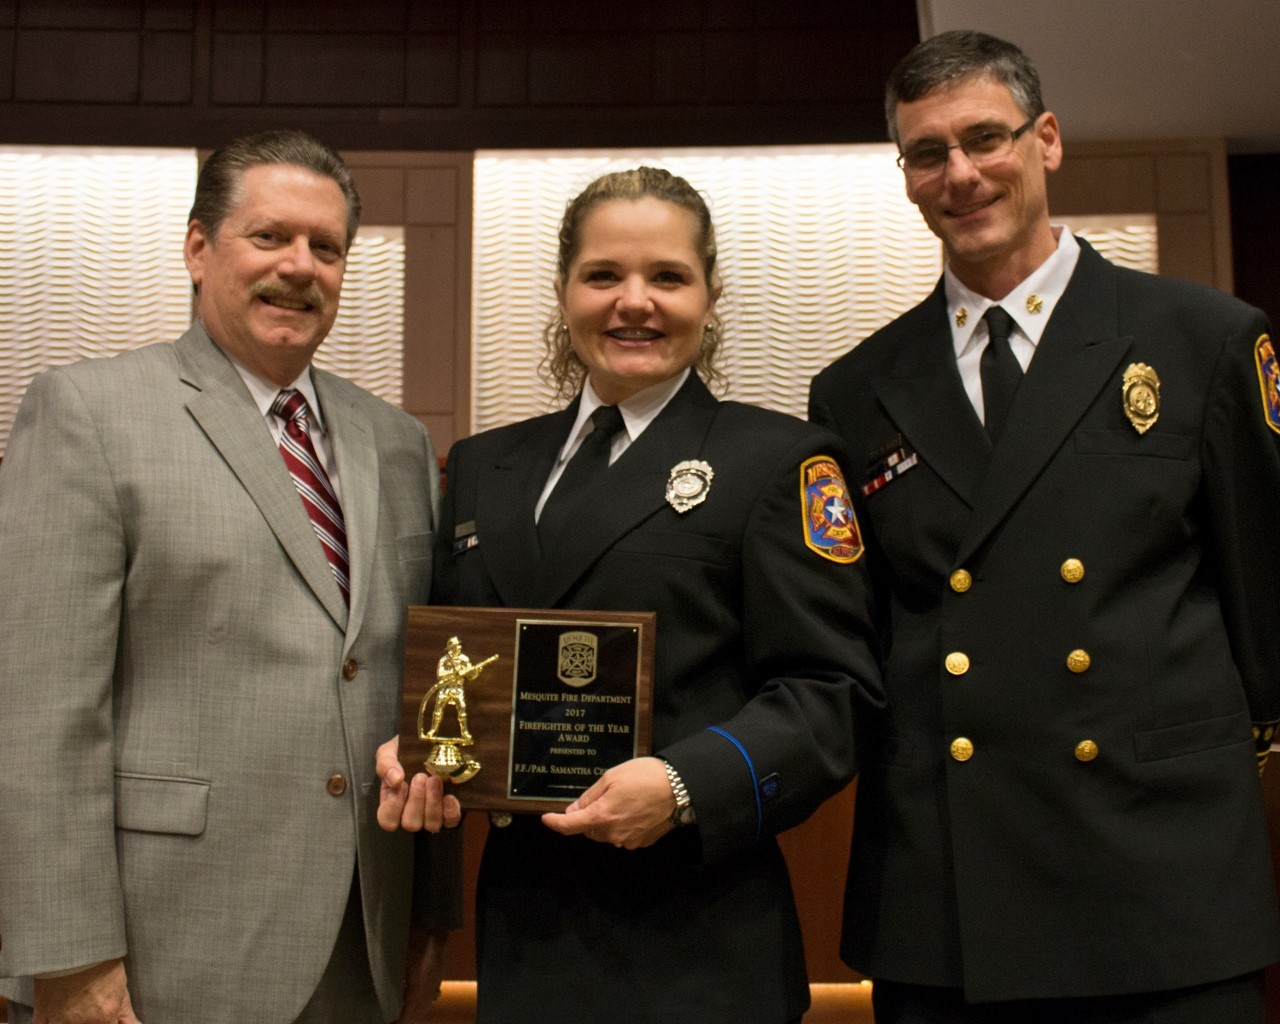 Firefighter of the Year - Samantha Criswell (1280x1024).jpg